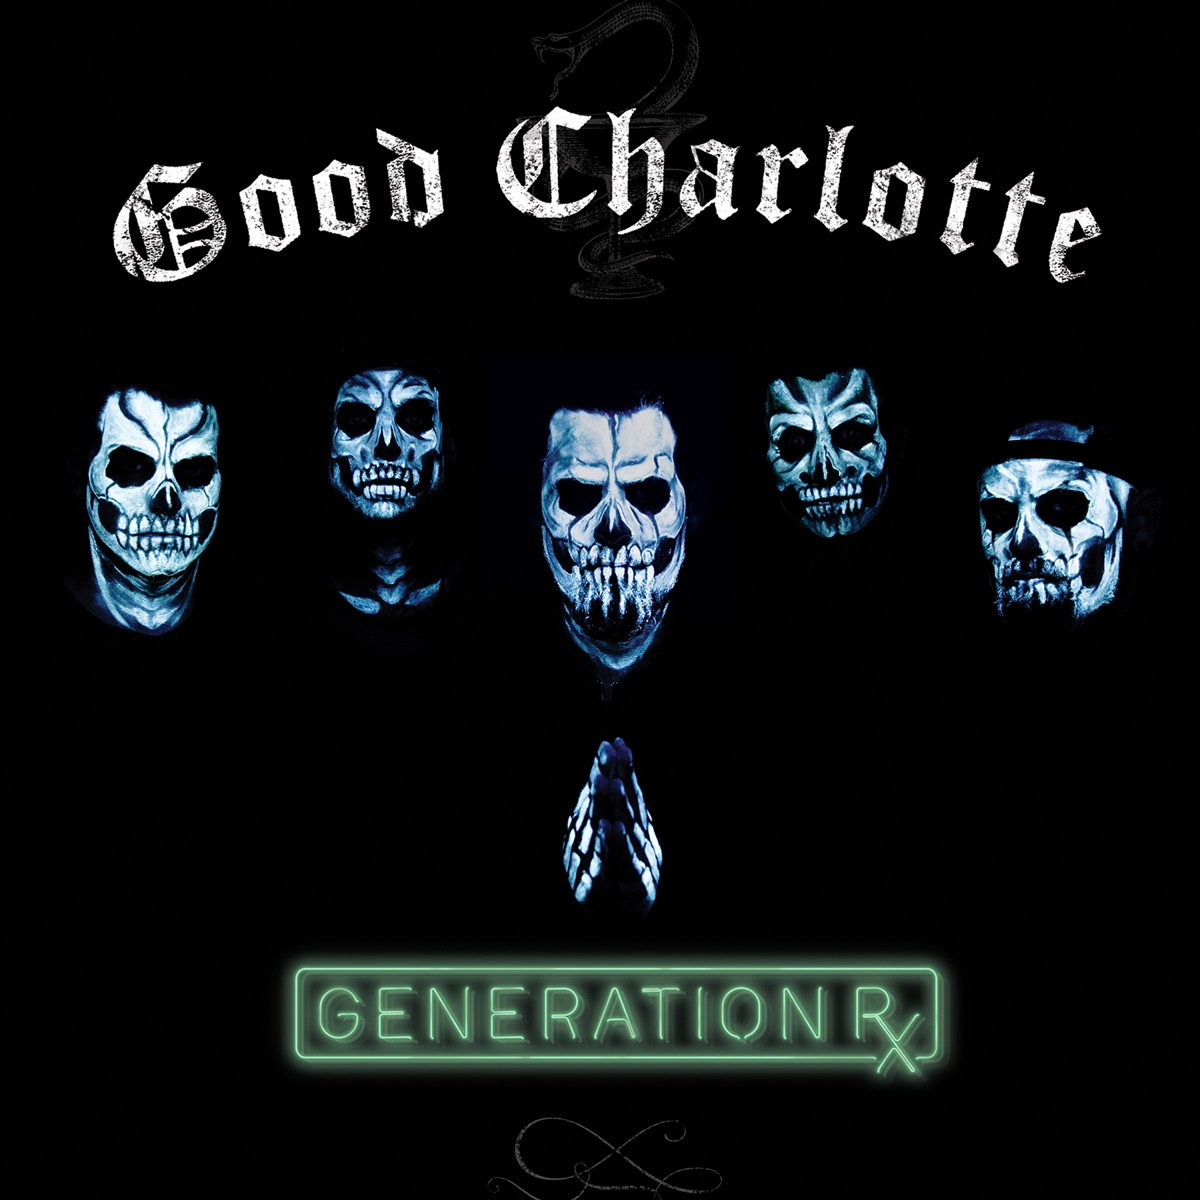 Generation Rx Good Charlotte CD cover